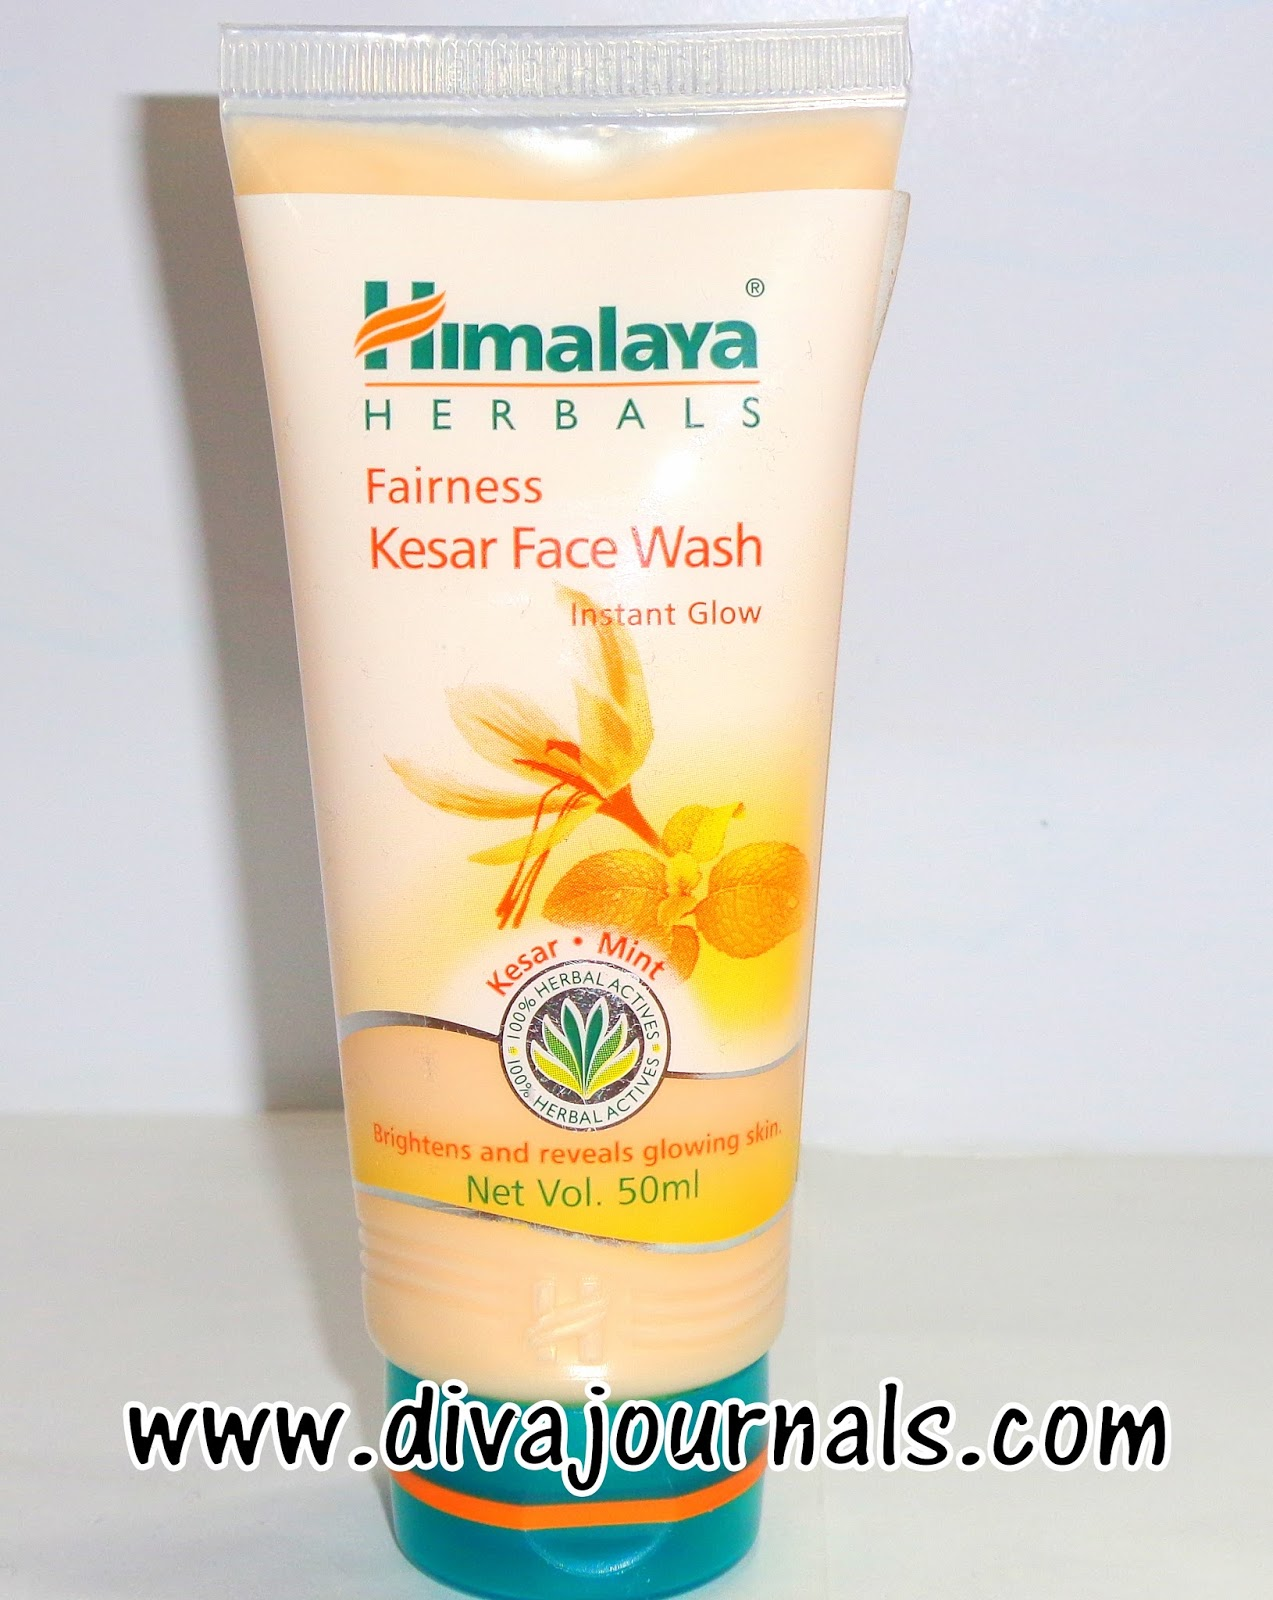 Himalaya Herbals Fairness Kesar Face wash Review